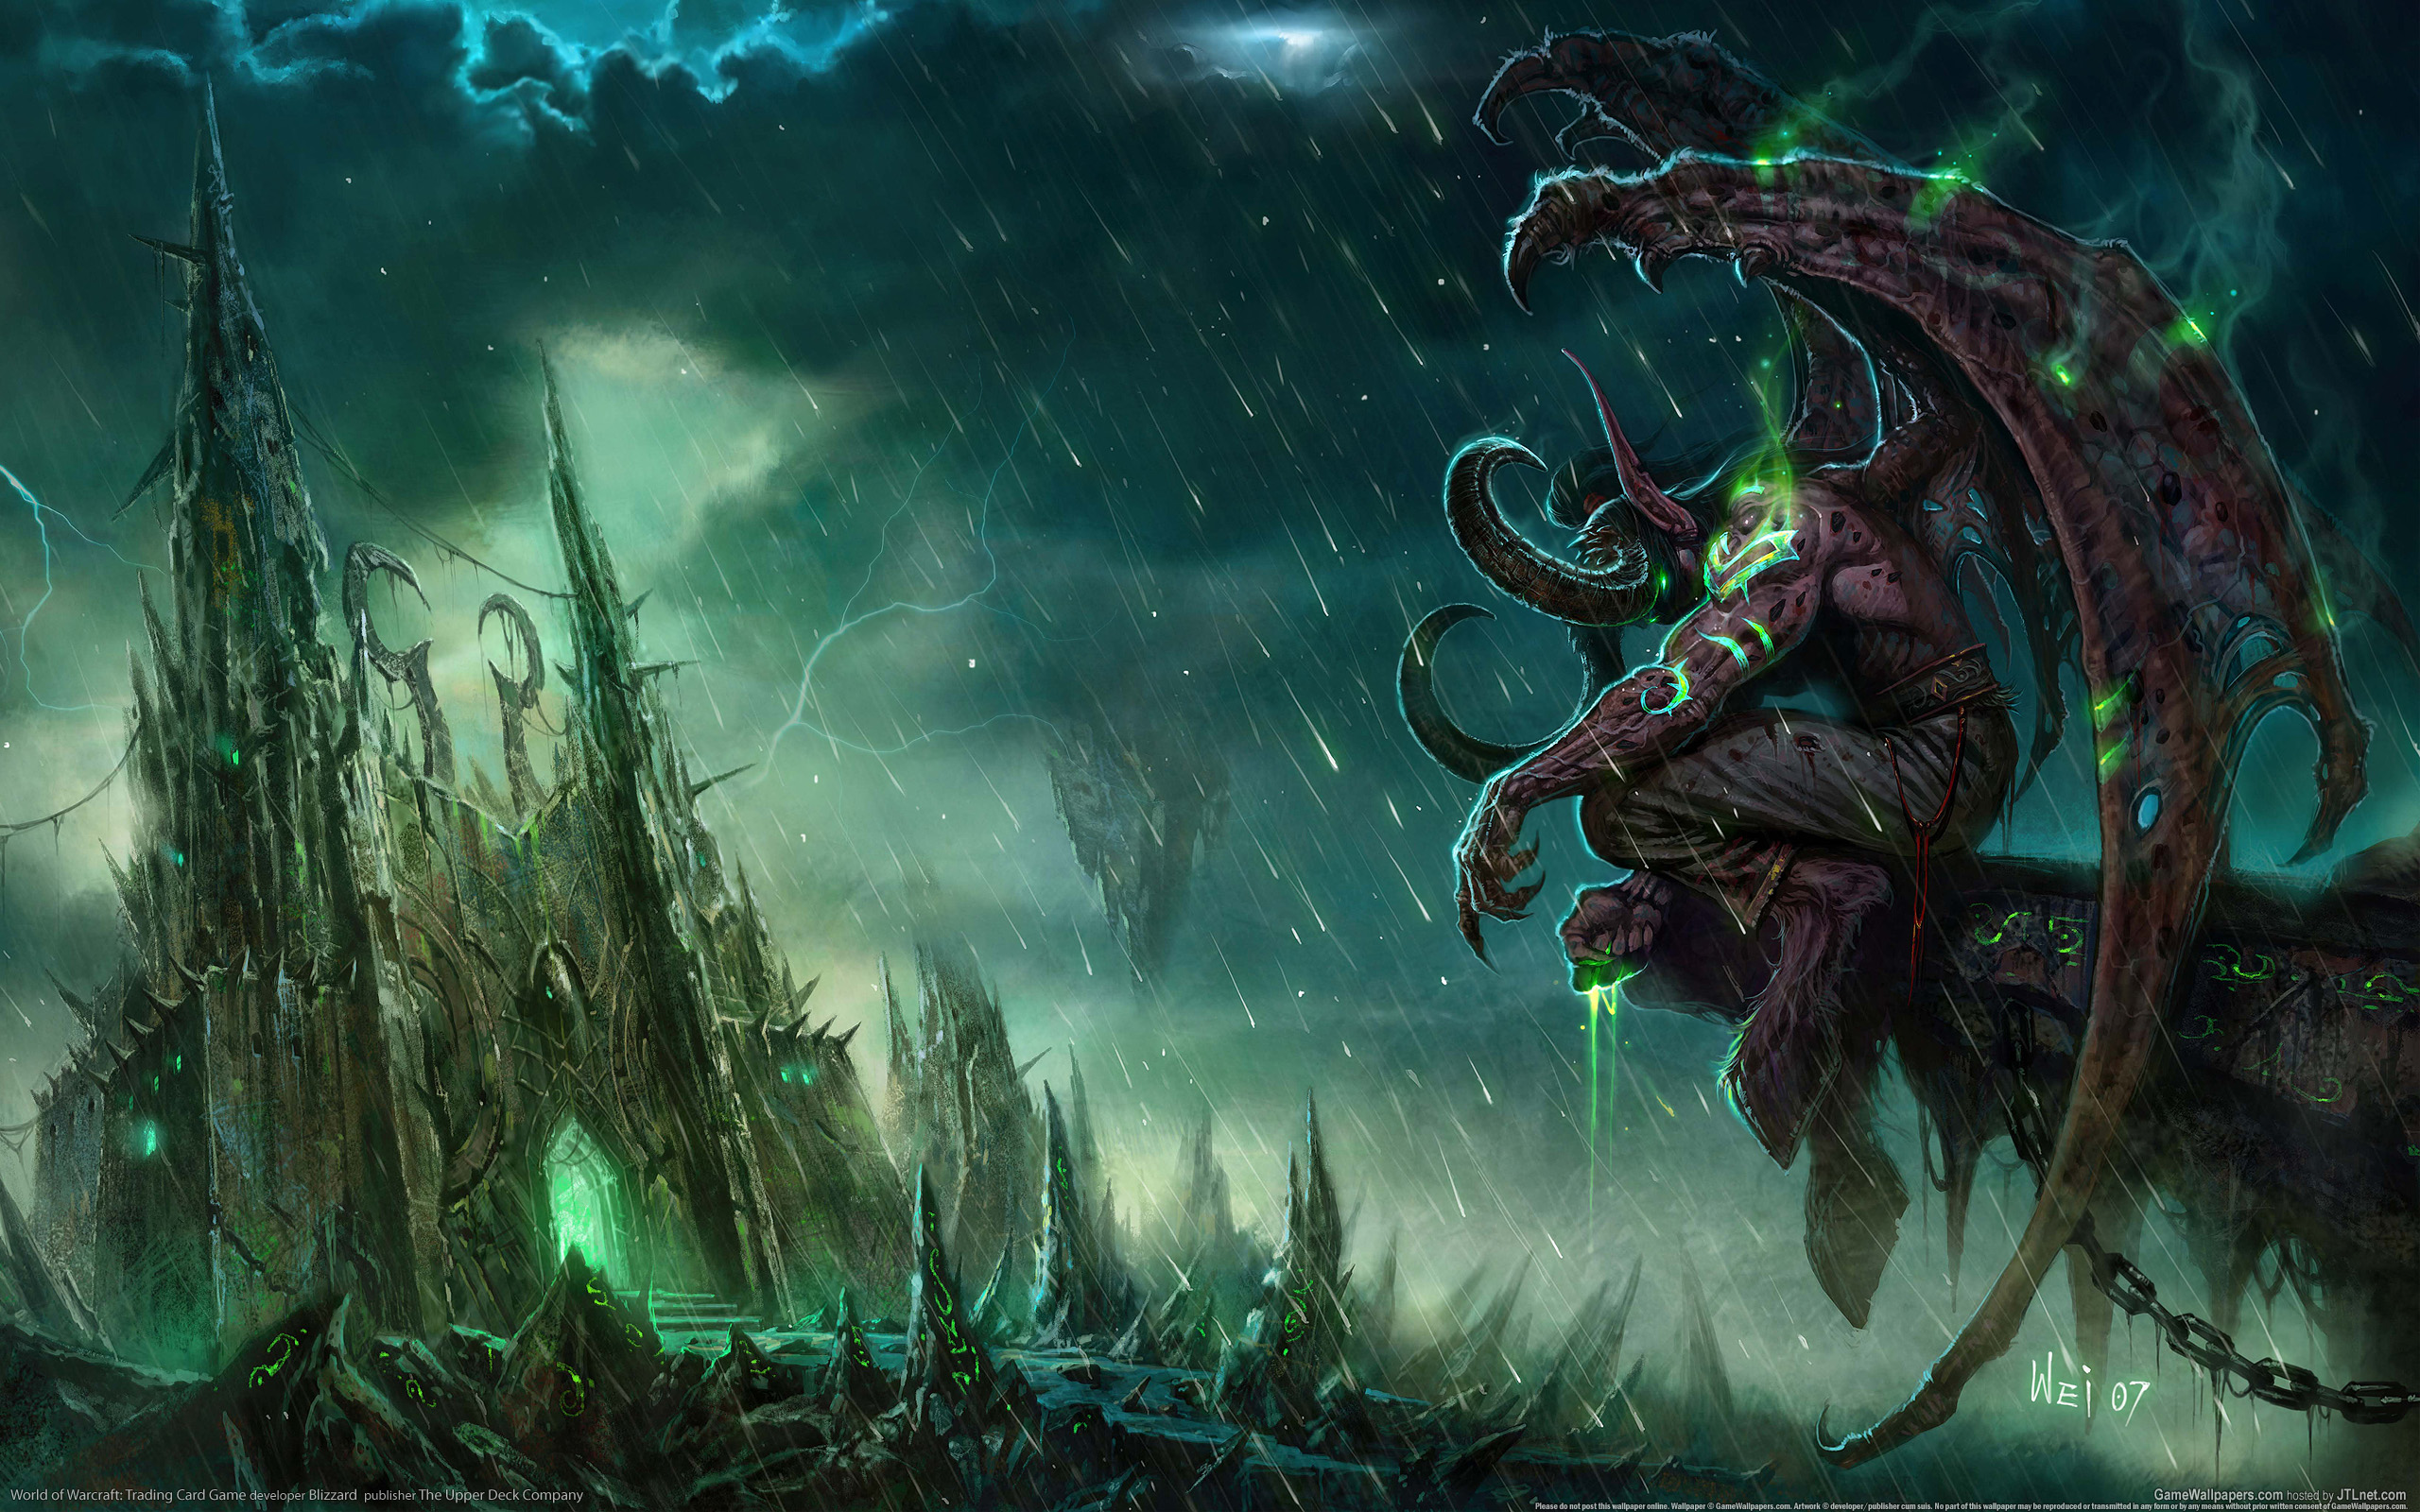 wallpaper world of warcraft trading card game 17 2560x1600